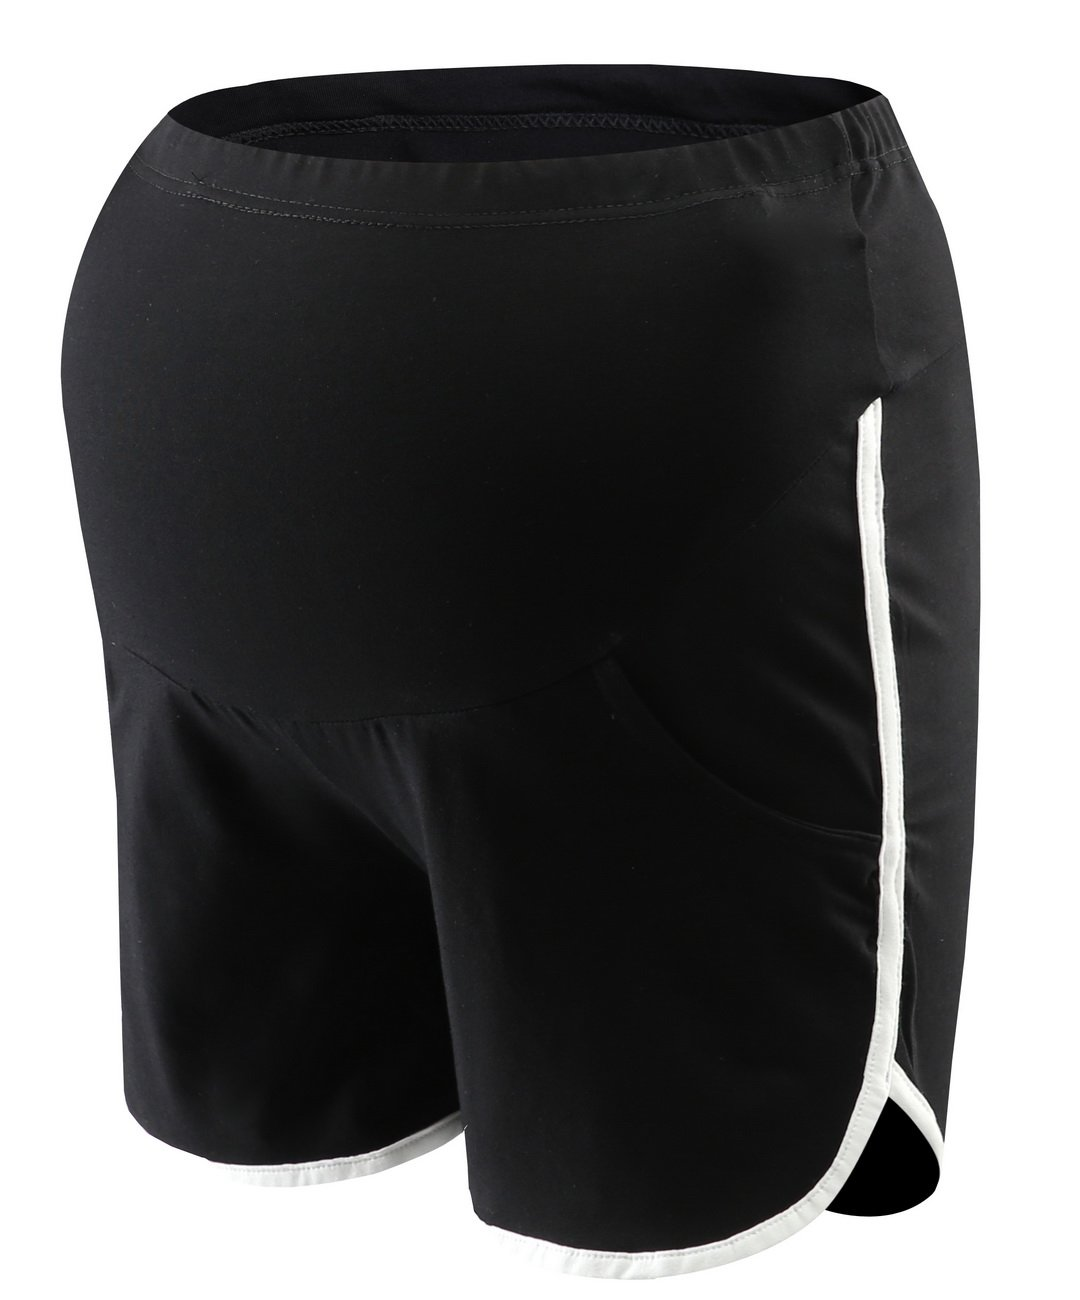 Foucome Women's Elastic High Waist Runner Pants Belly Care Active Lounge Maternity Shorts Beach Shorts Black